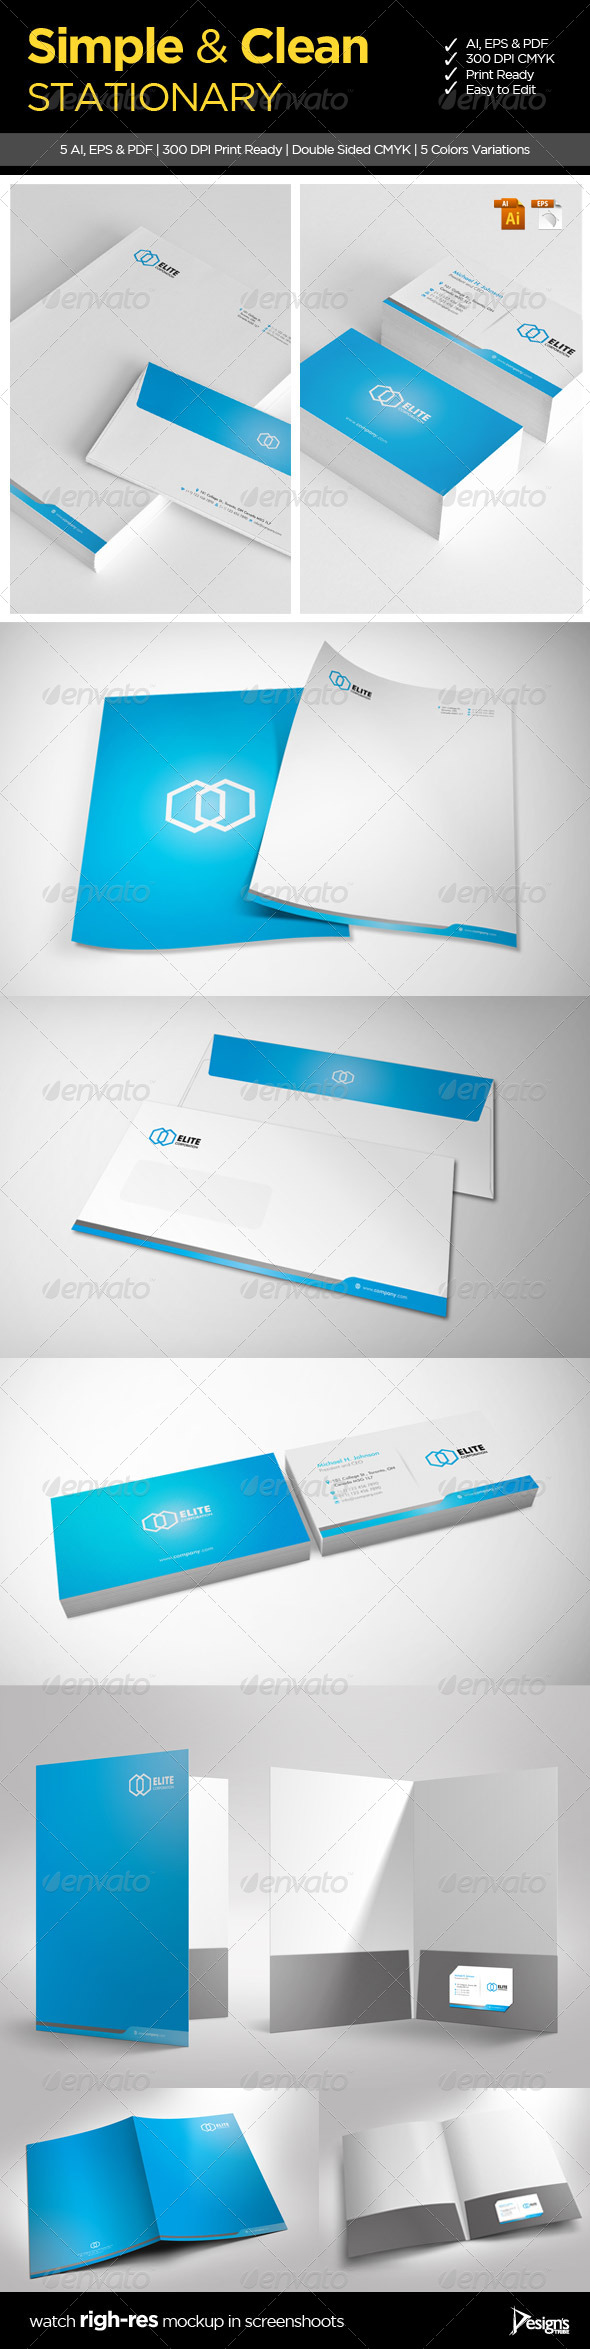 GraphicRiver Simple and Clean Stationary 1 5293981